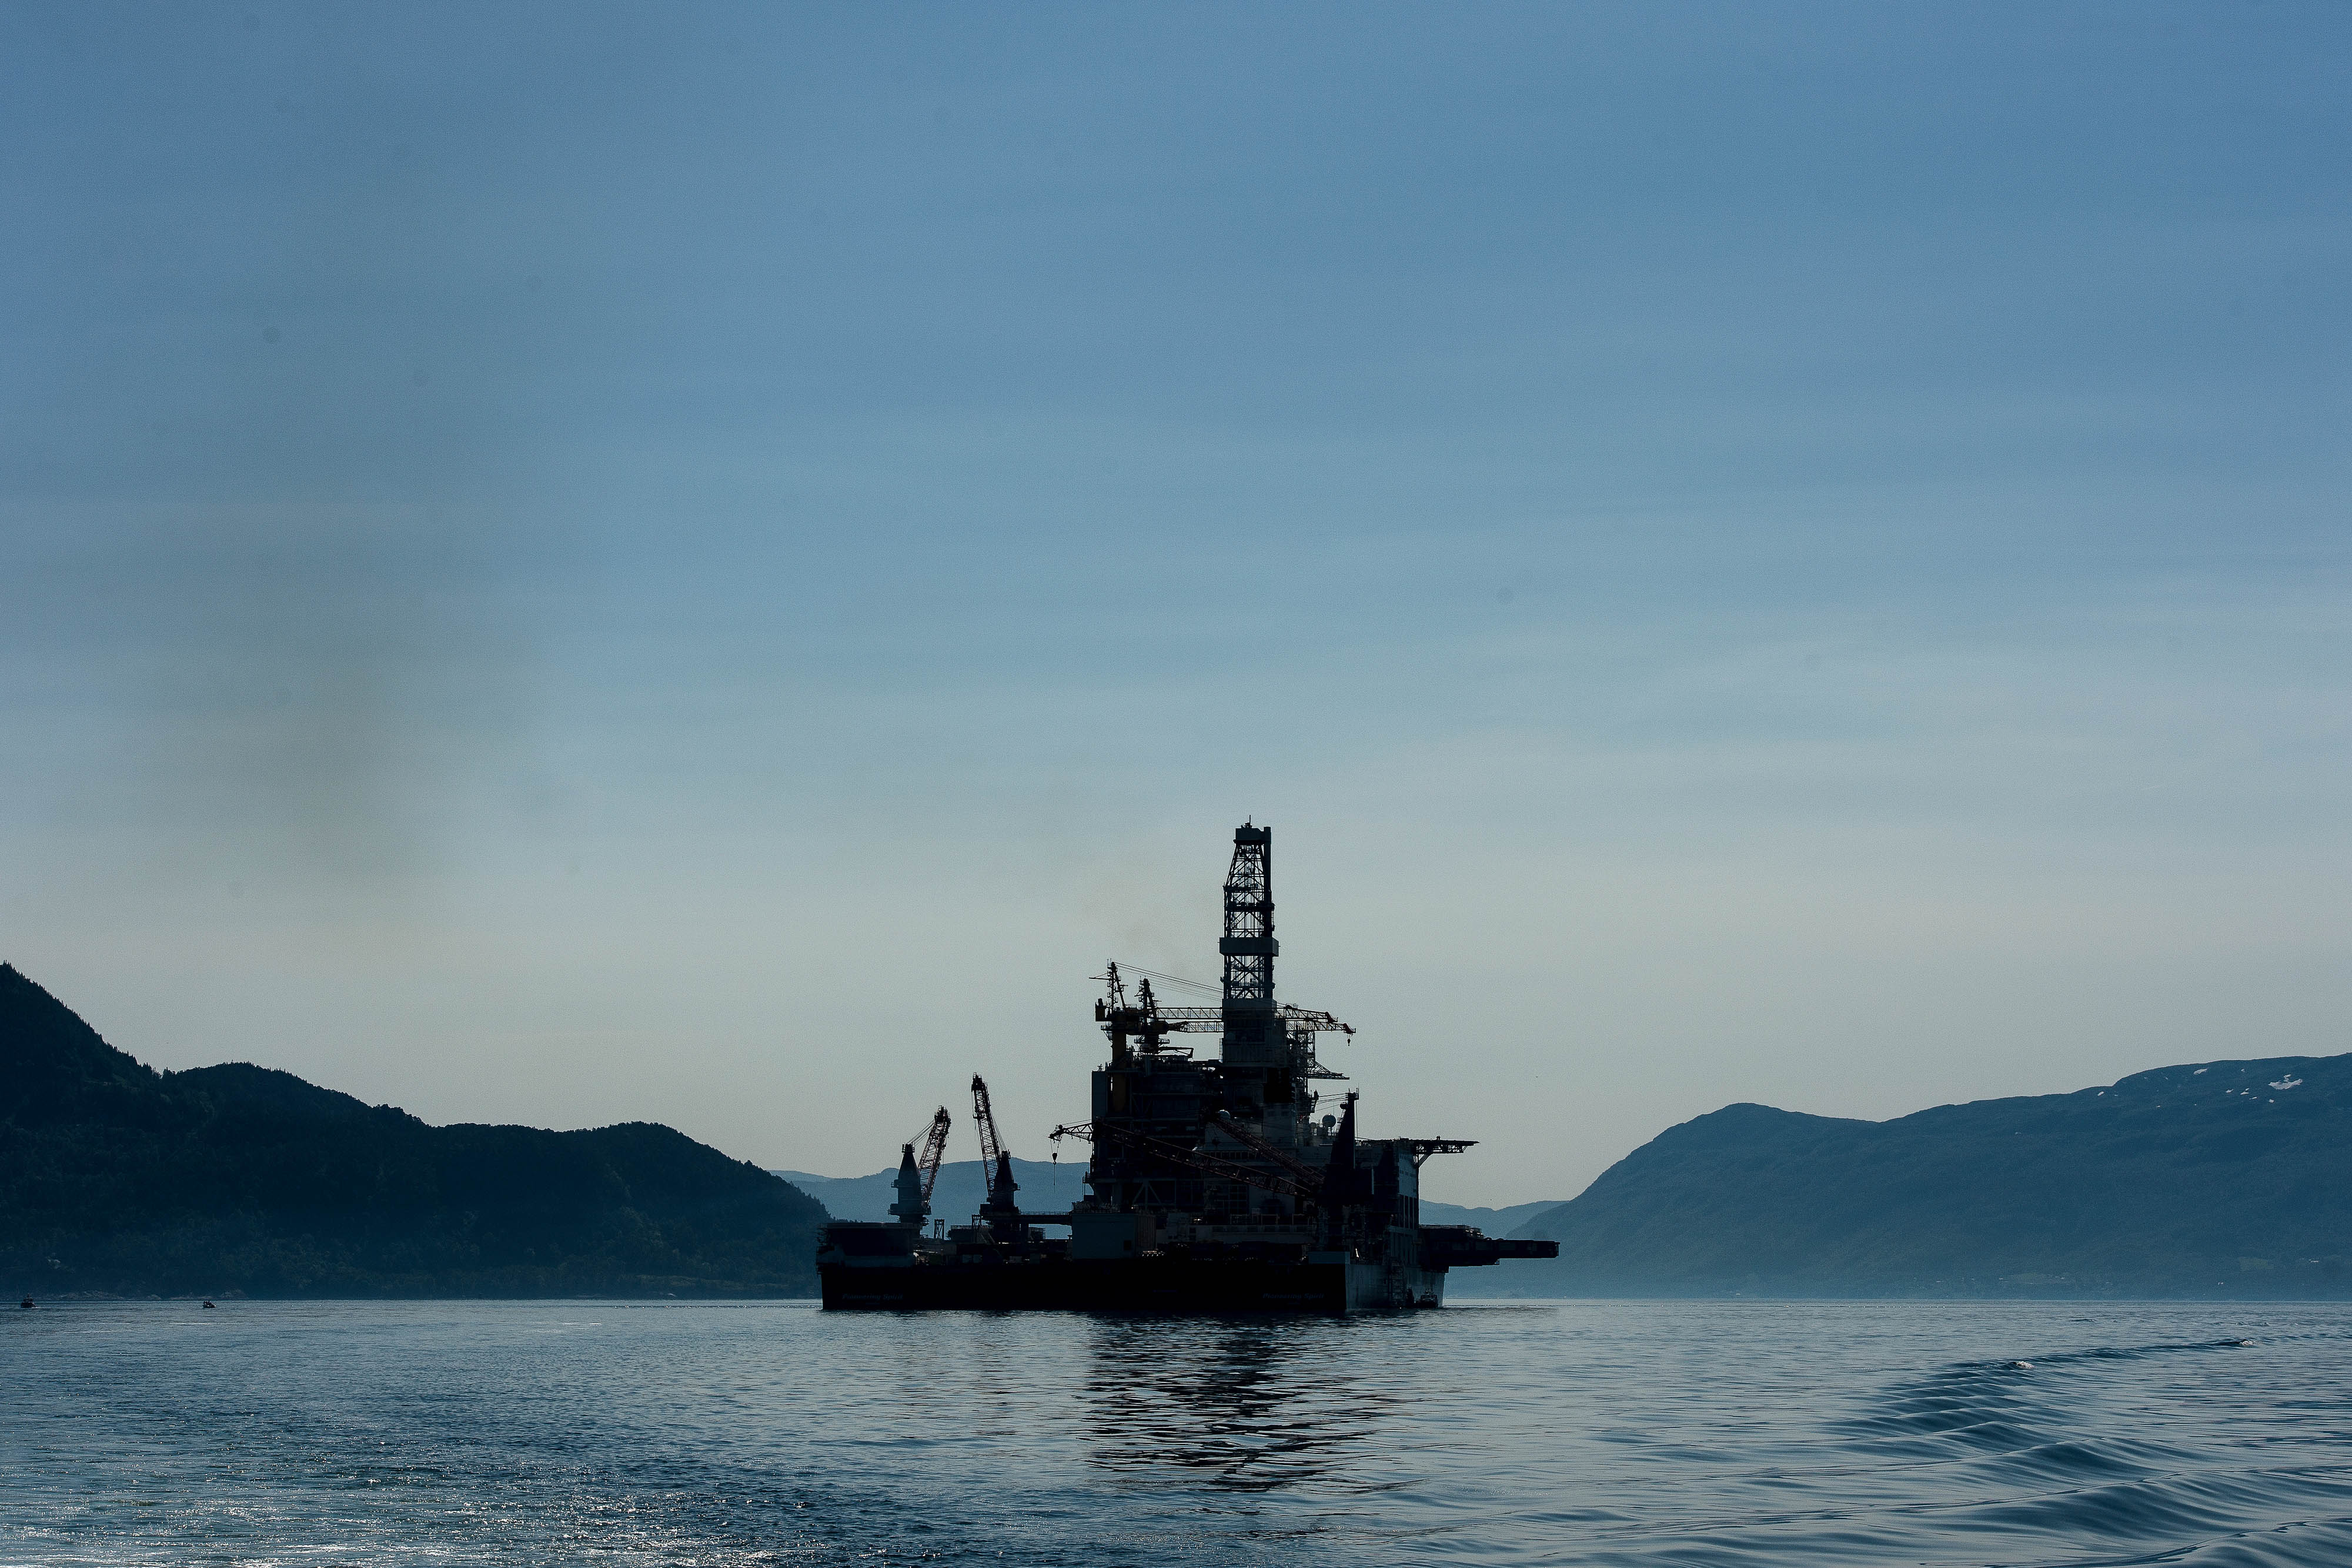 An oil drilling platform sits on board the world's largest construction vessel, the Pioneering Spirit, in the Bomla fjord near Leirvik, ahead of its transportation to the Johan Sverdrup oil field, Norway. Photographer: Carina Johansen/Bloomberg